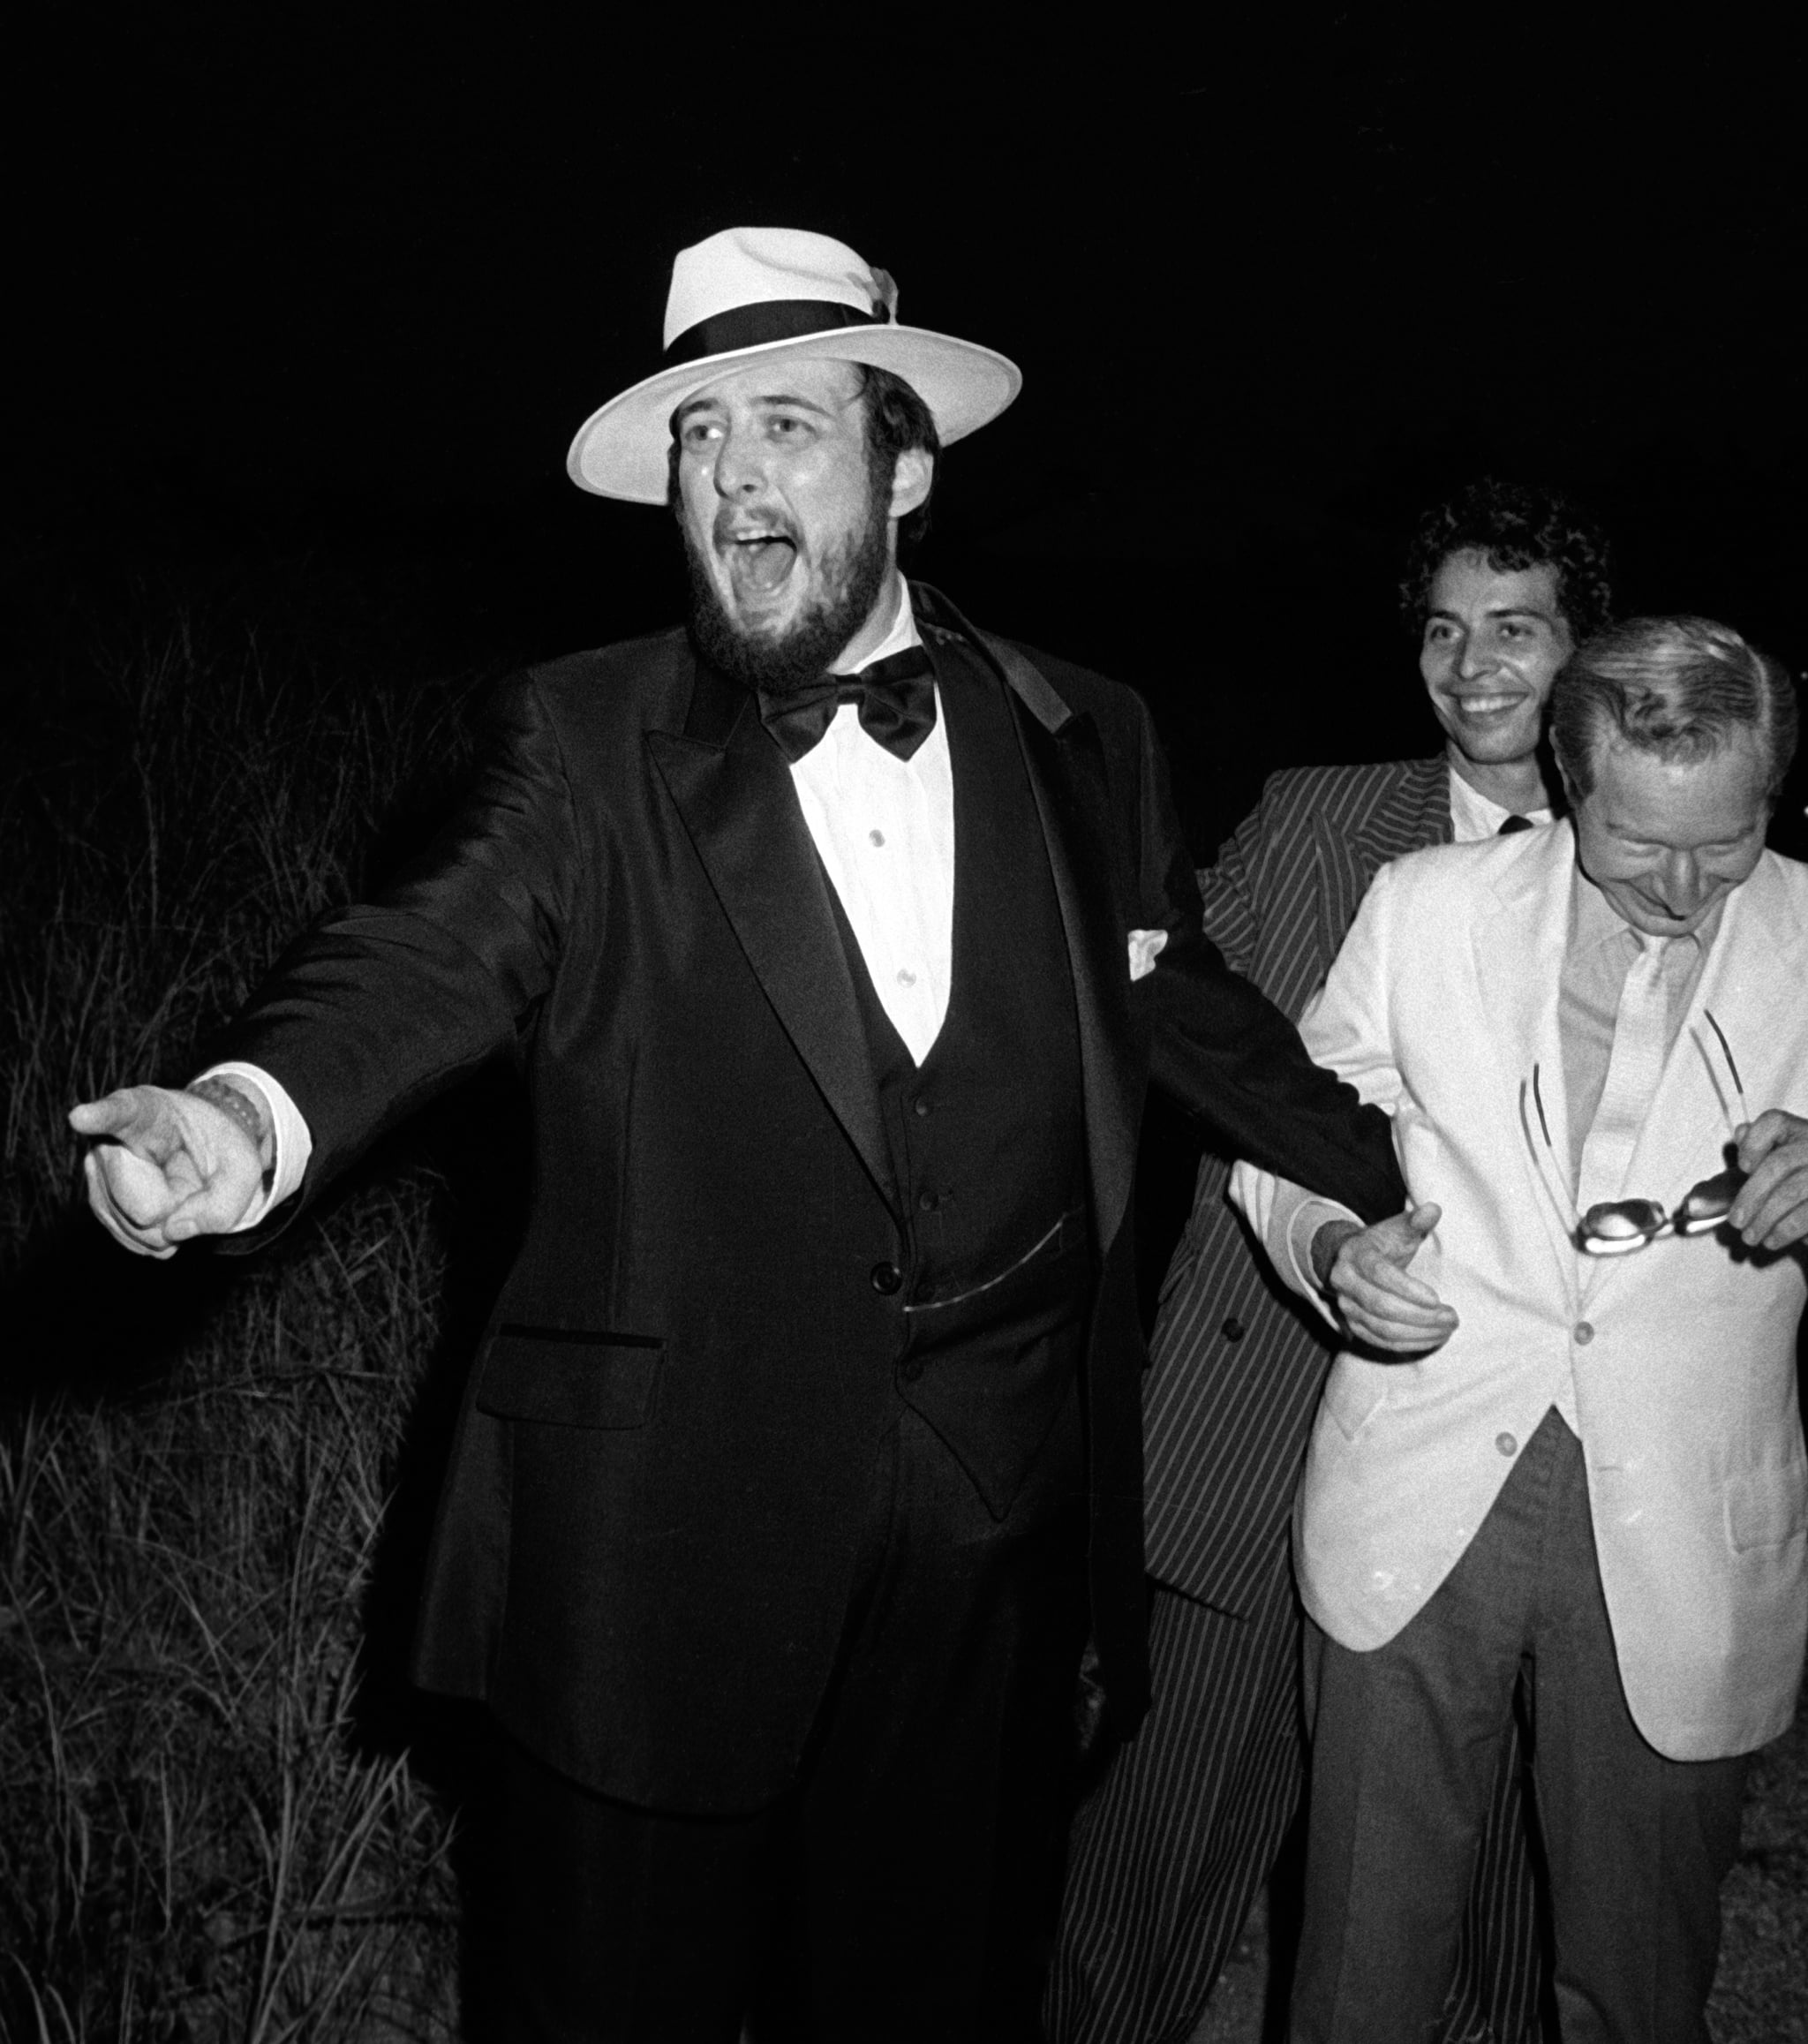 SOUTHAMPTON, NY - SEPTEMBER 5:  Roy Radin attends Roy Radin - Toni Fillet Wedding on September 5, 1981 at his home in Southampton, New York. (Photo by Ron Galella, Ltd./Ron Galella Collection via Getty Images)